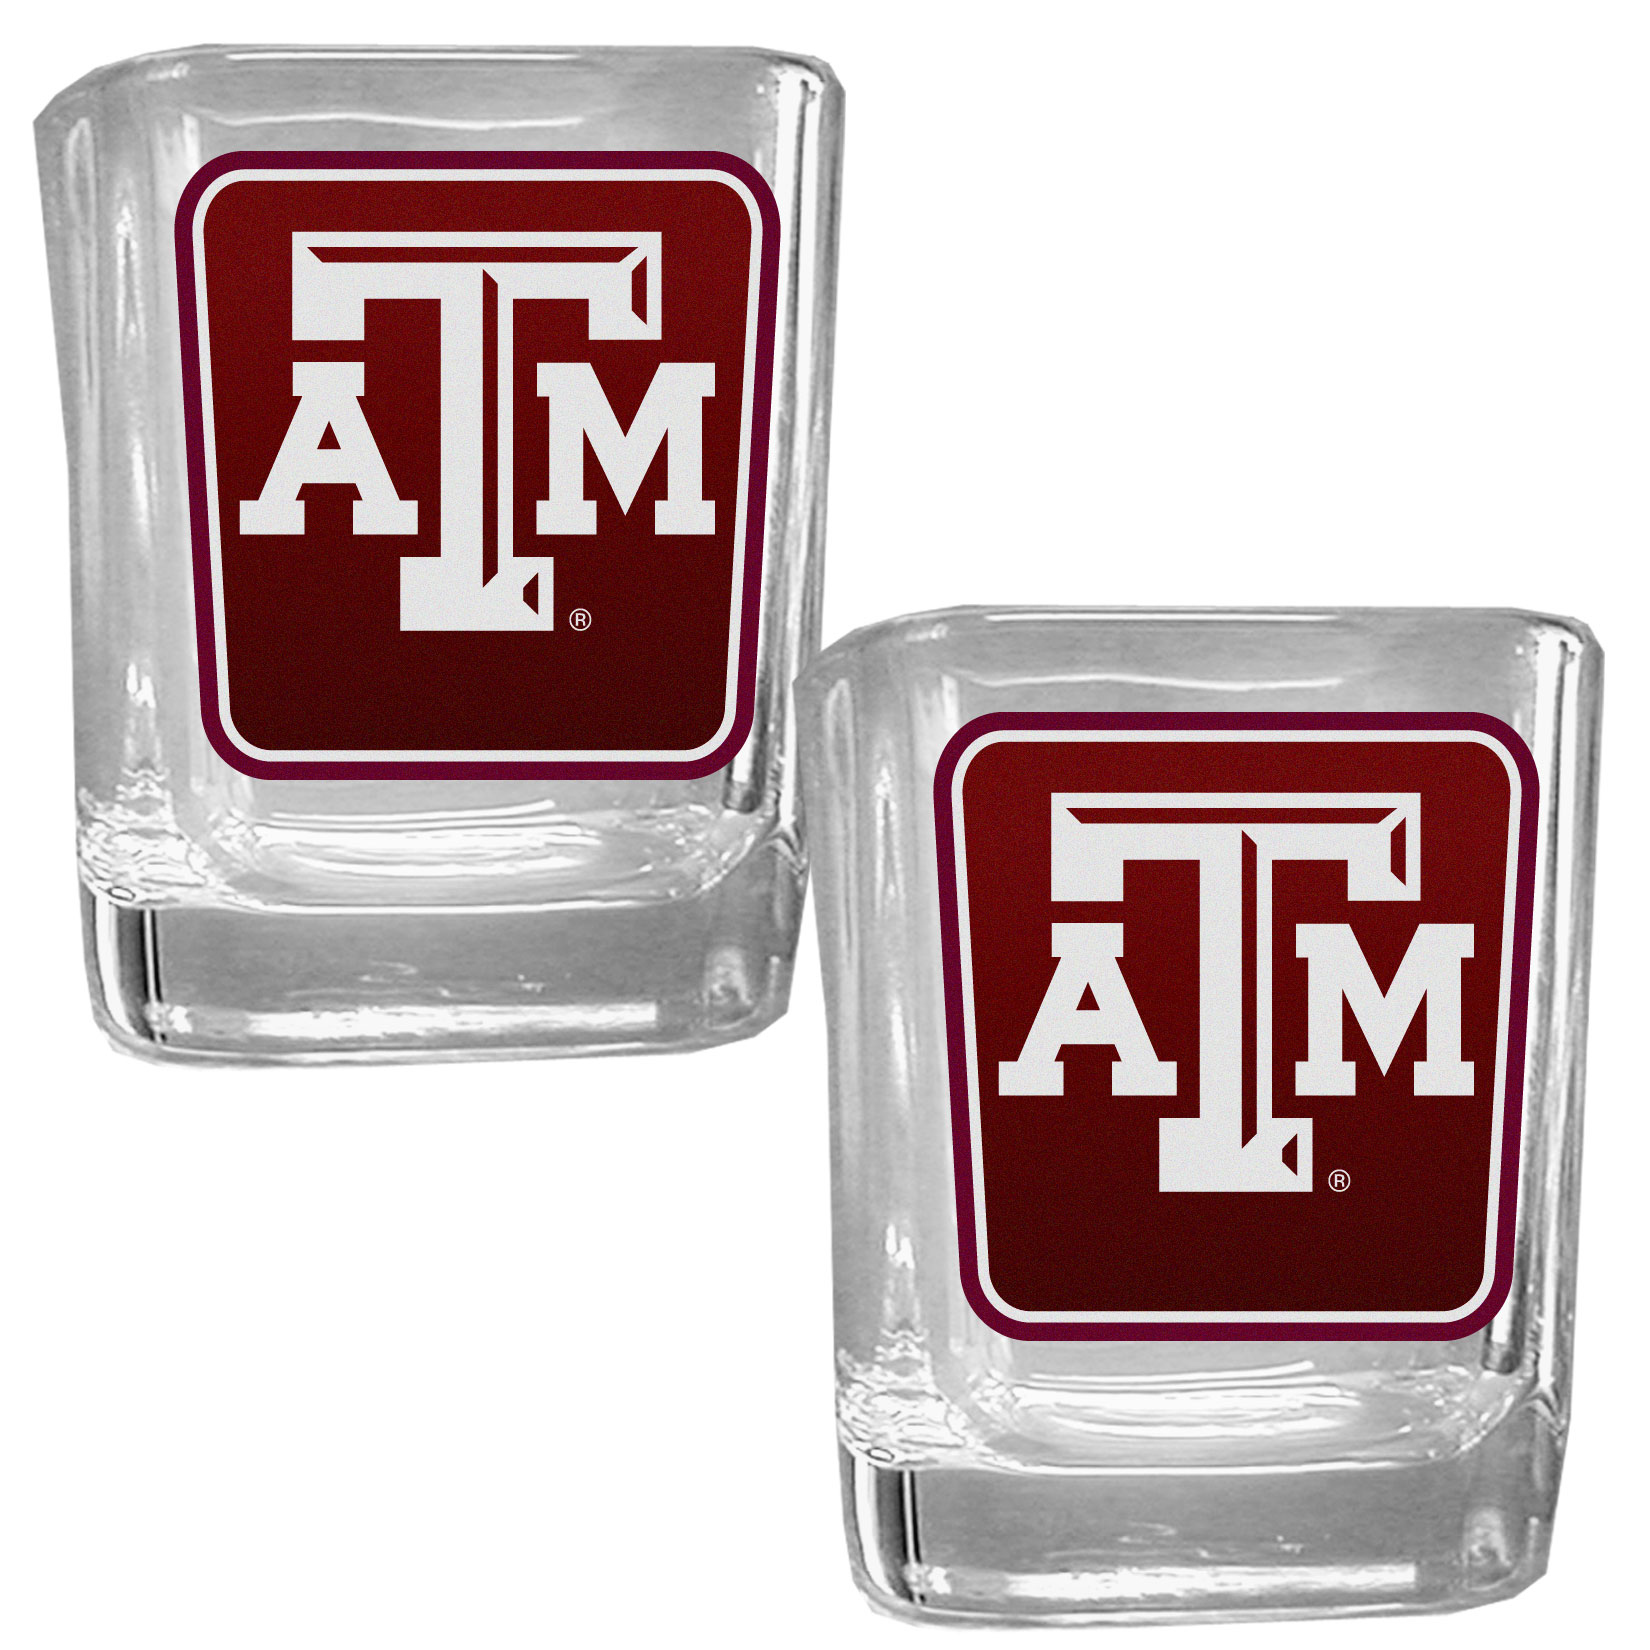 Texas A and M Aggies Square Glass Shot Glass Set - Our glass shot glasses are perfect for collectors or any game day event. The 2 ounce glasses feature bright, vidid digital Texas A & M Aggies graphics. Comes in a set of 2.